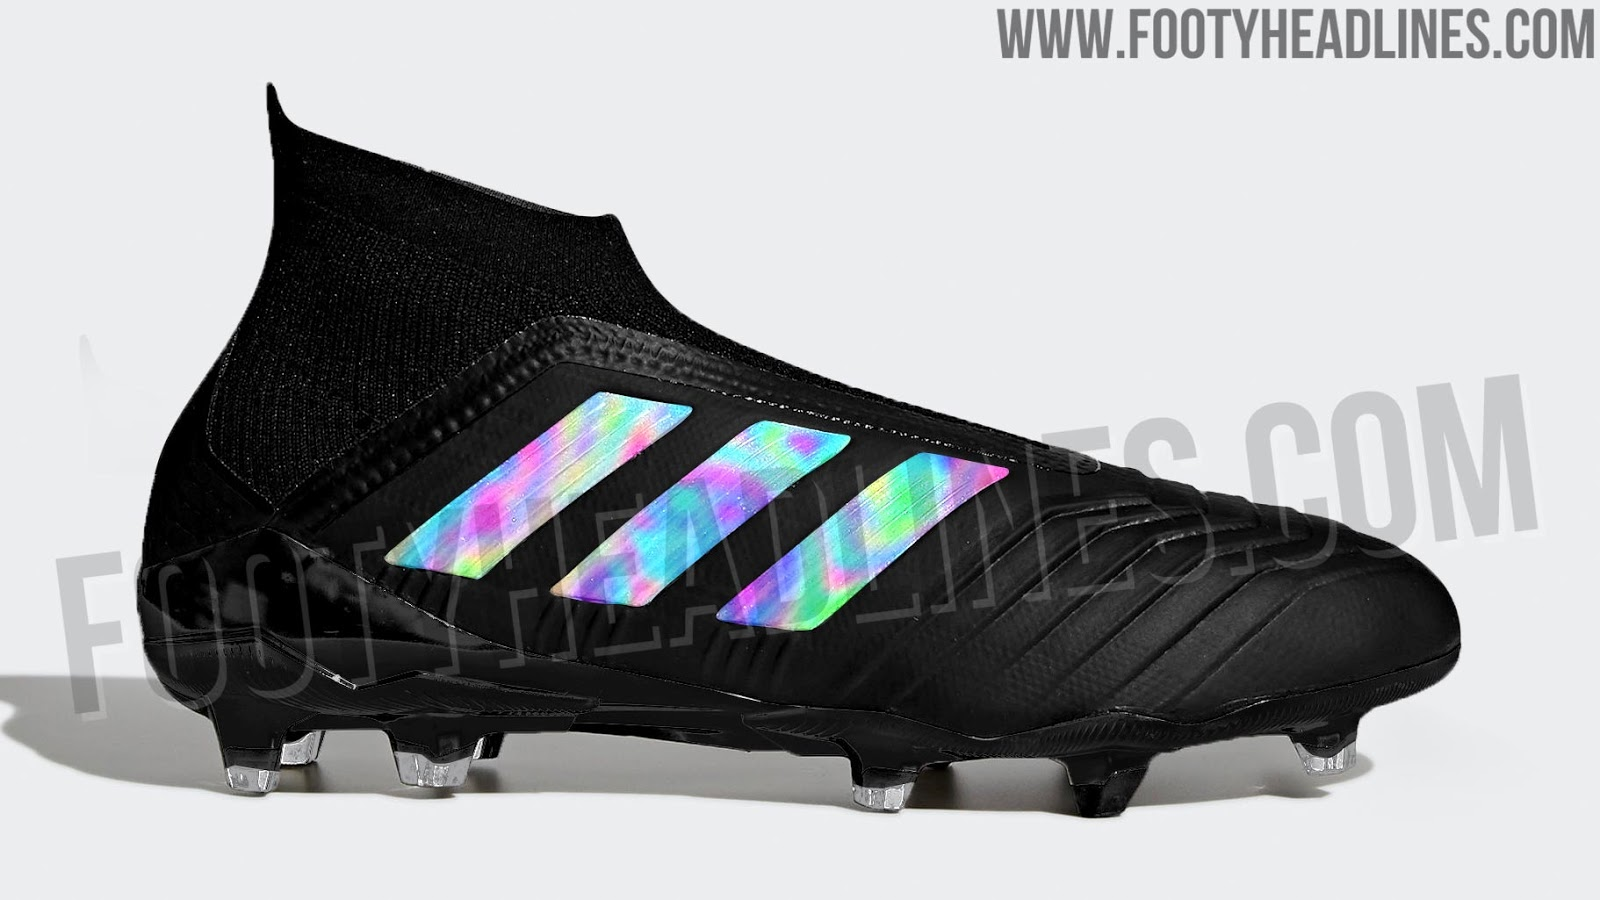 purchase cheap b215e 129a0 A blackout look with a twist, the Adidas Predator 18+ Shadow Mode soccer  boots are all-black and feature bright iridescent 3 Stripes on the outstep.